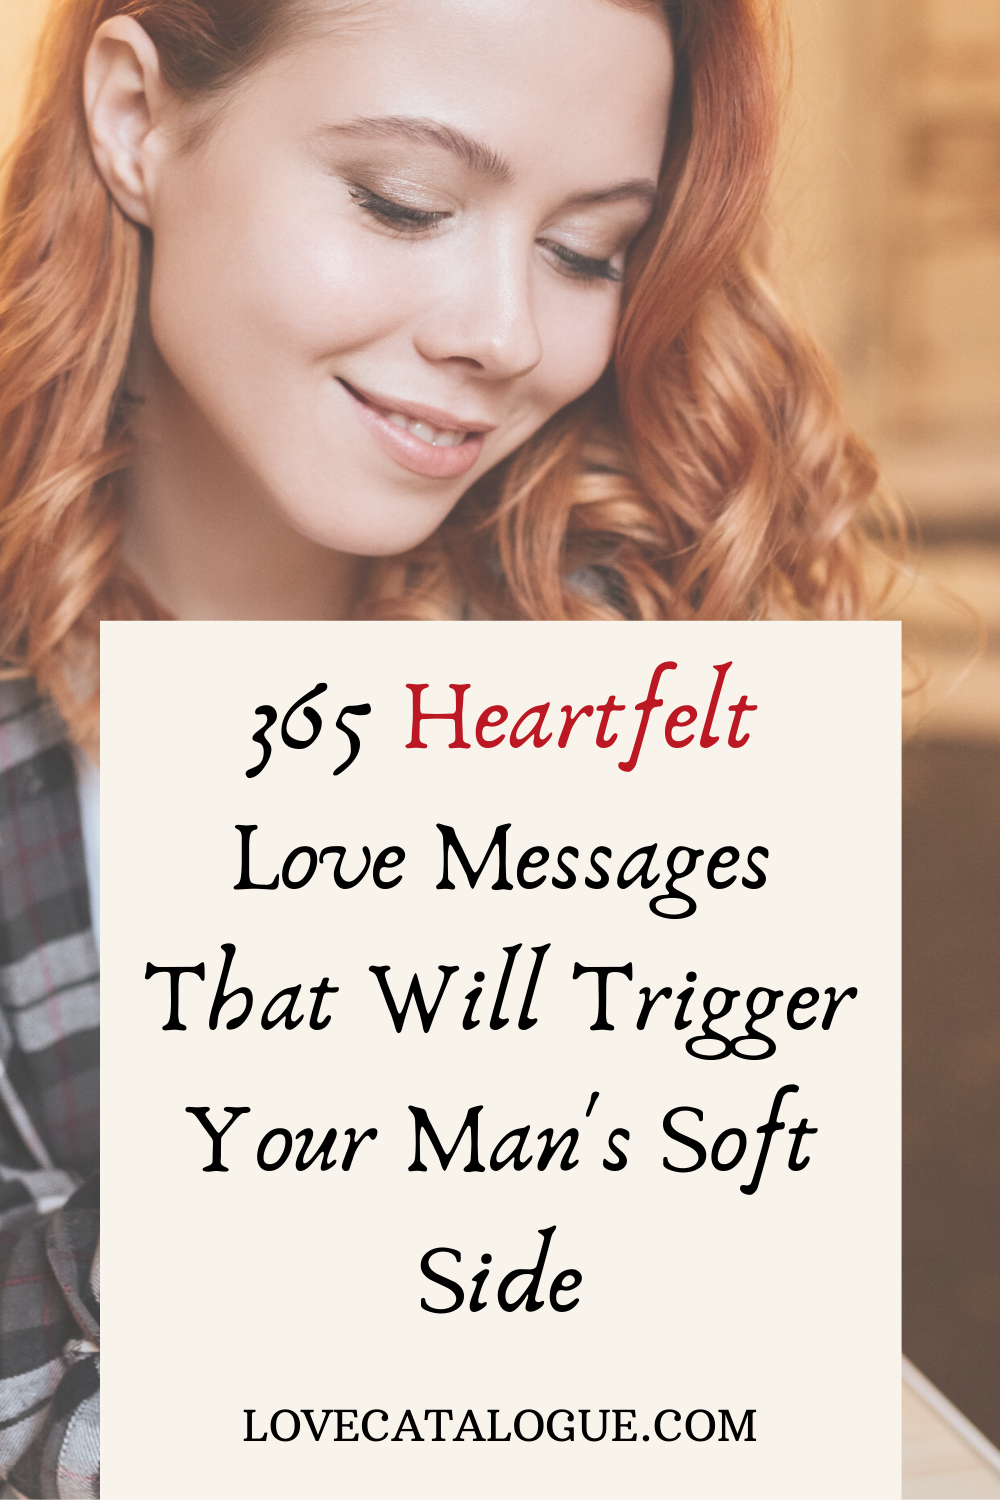 365 Heartfelt love messages that will trigger your man's soft side